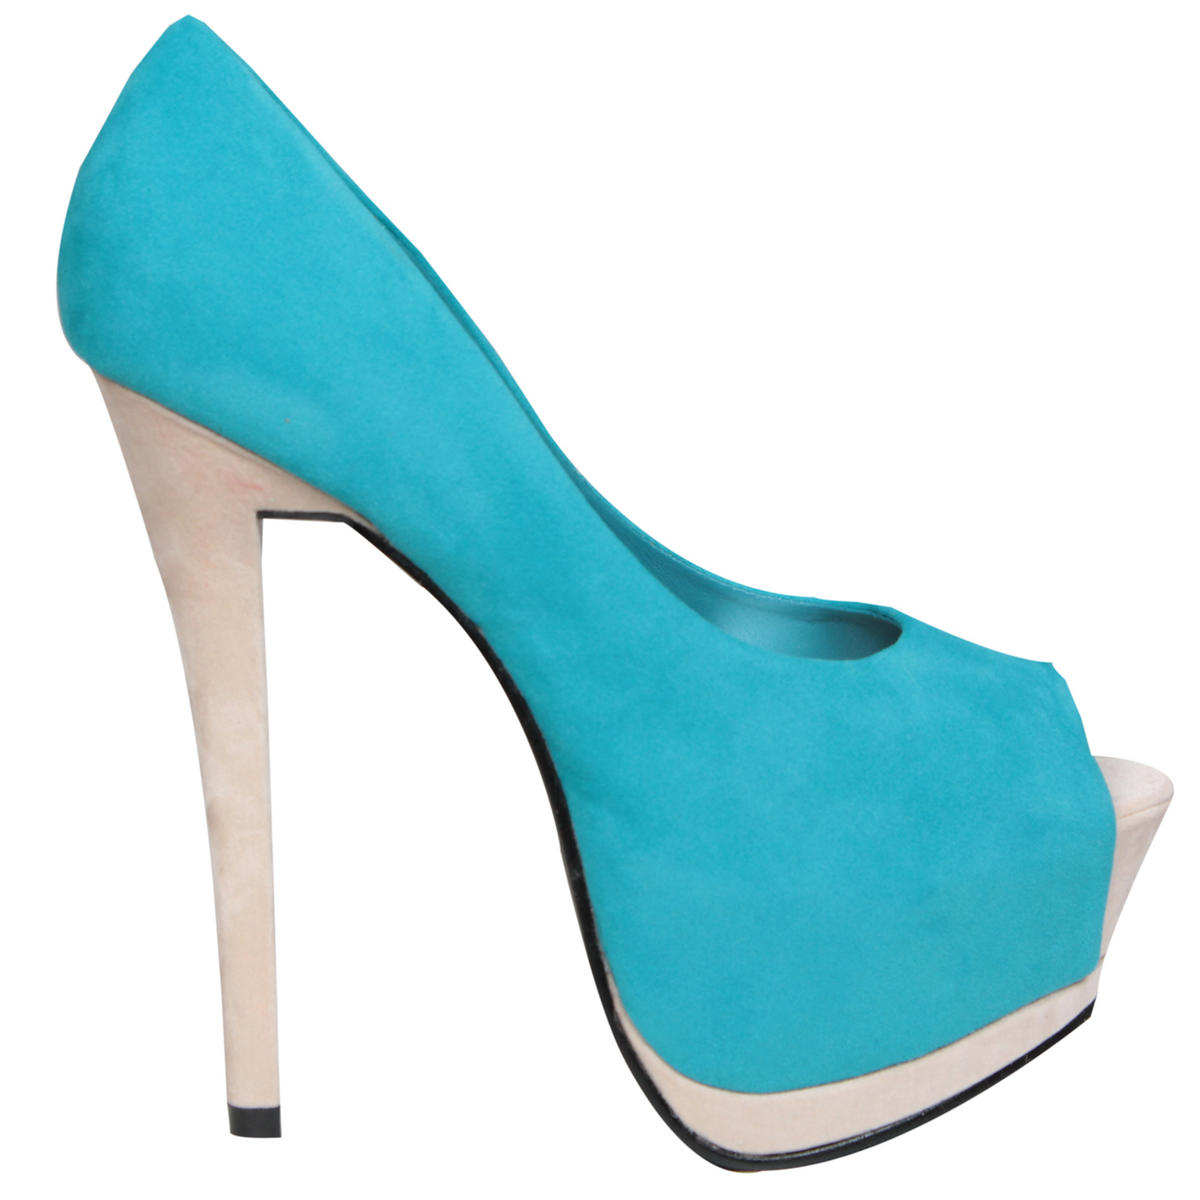 SIZE 3 ONLY Colour Block Peeptoe Platform Shoe Preview